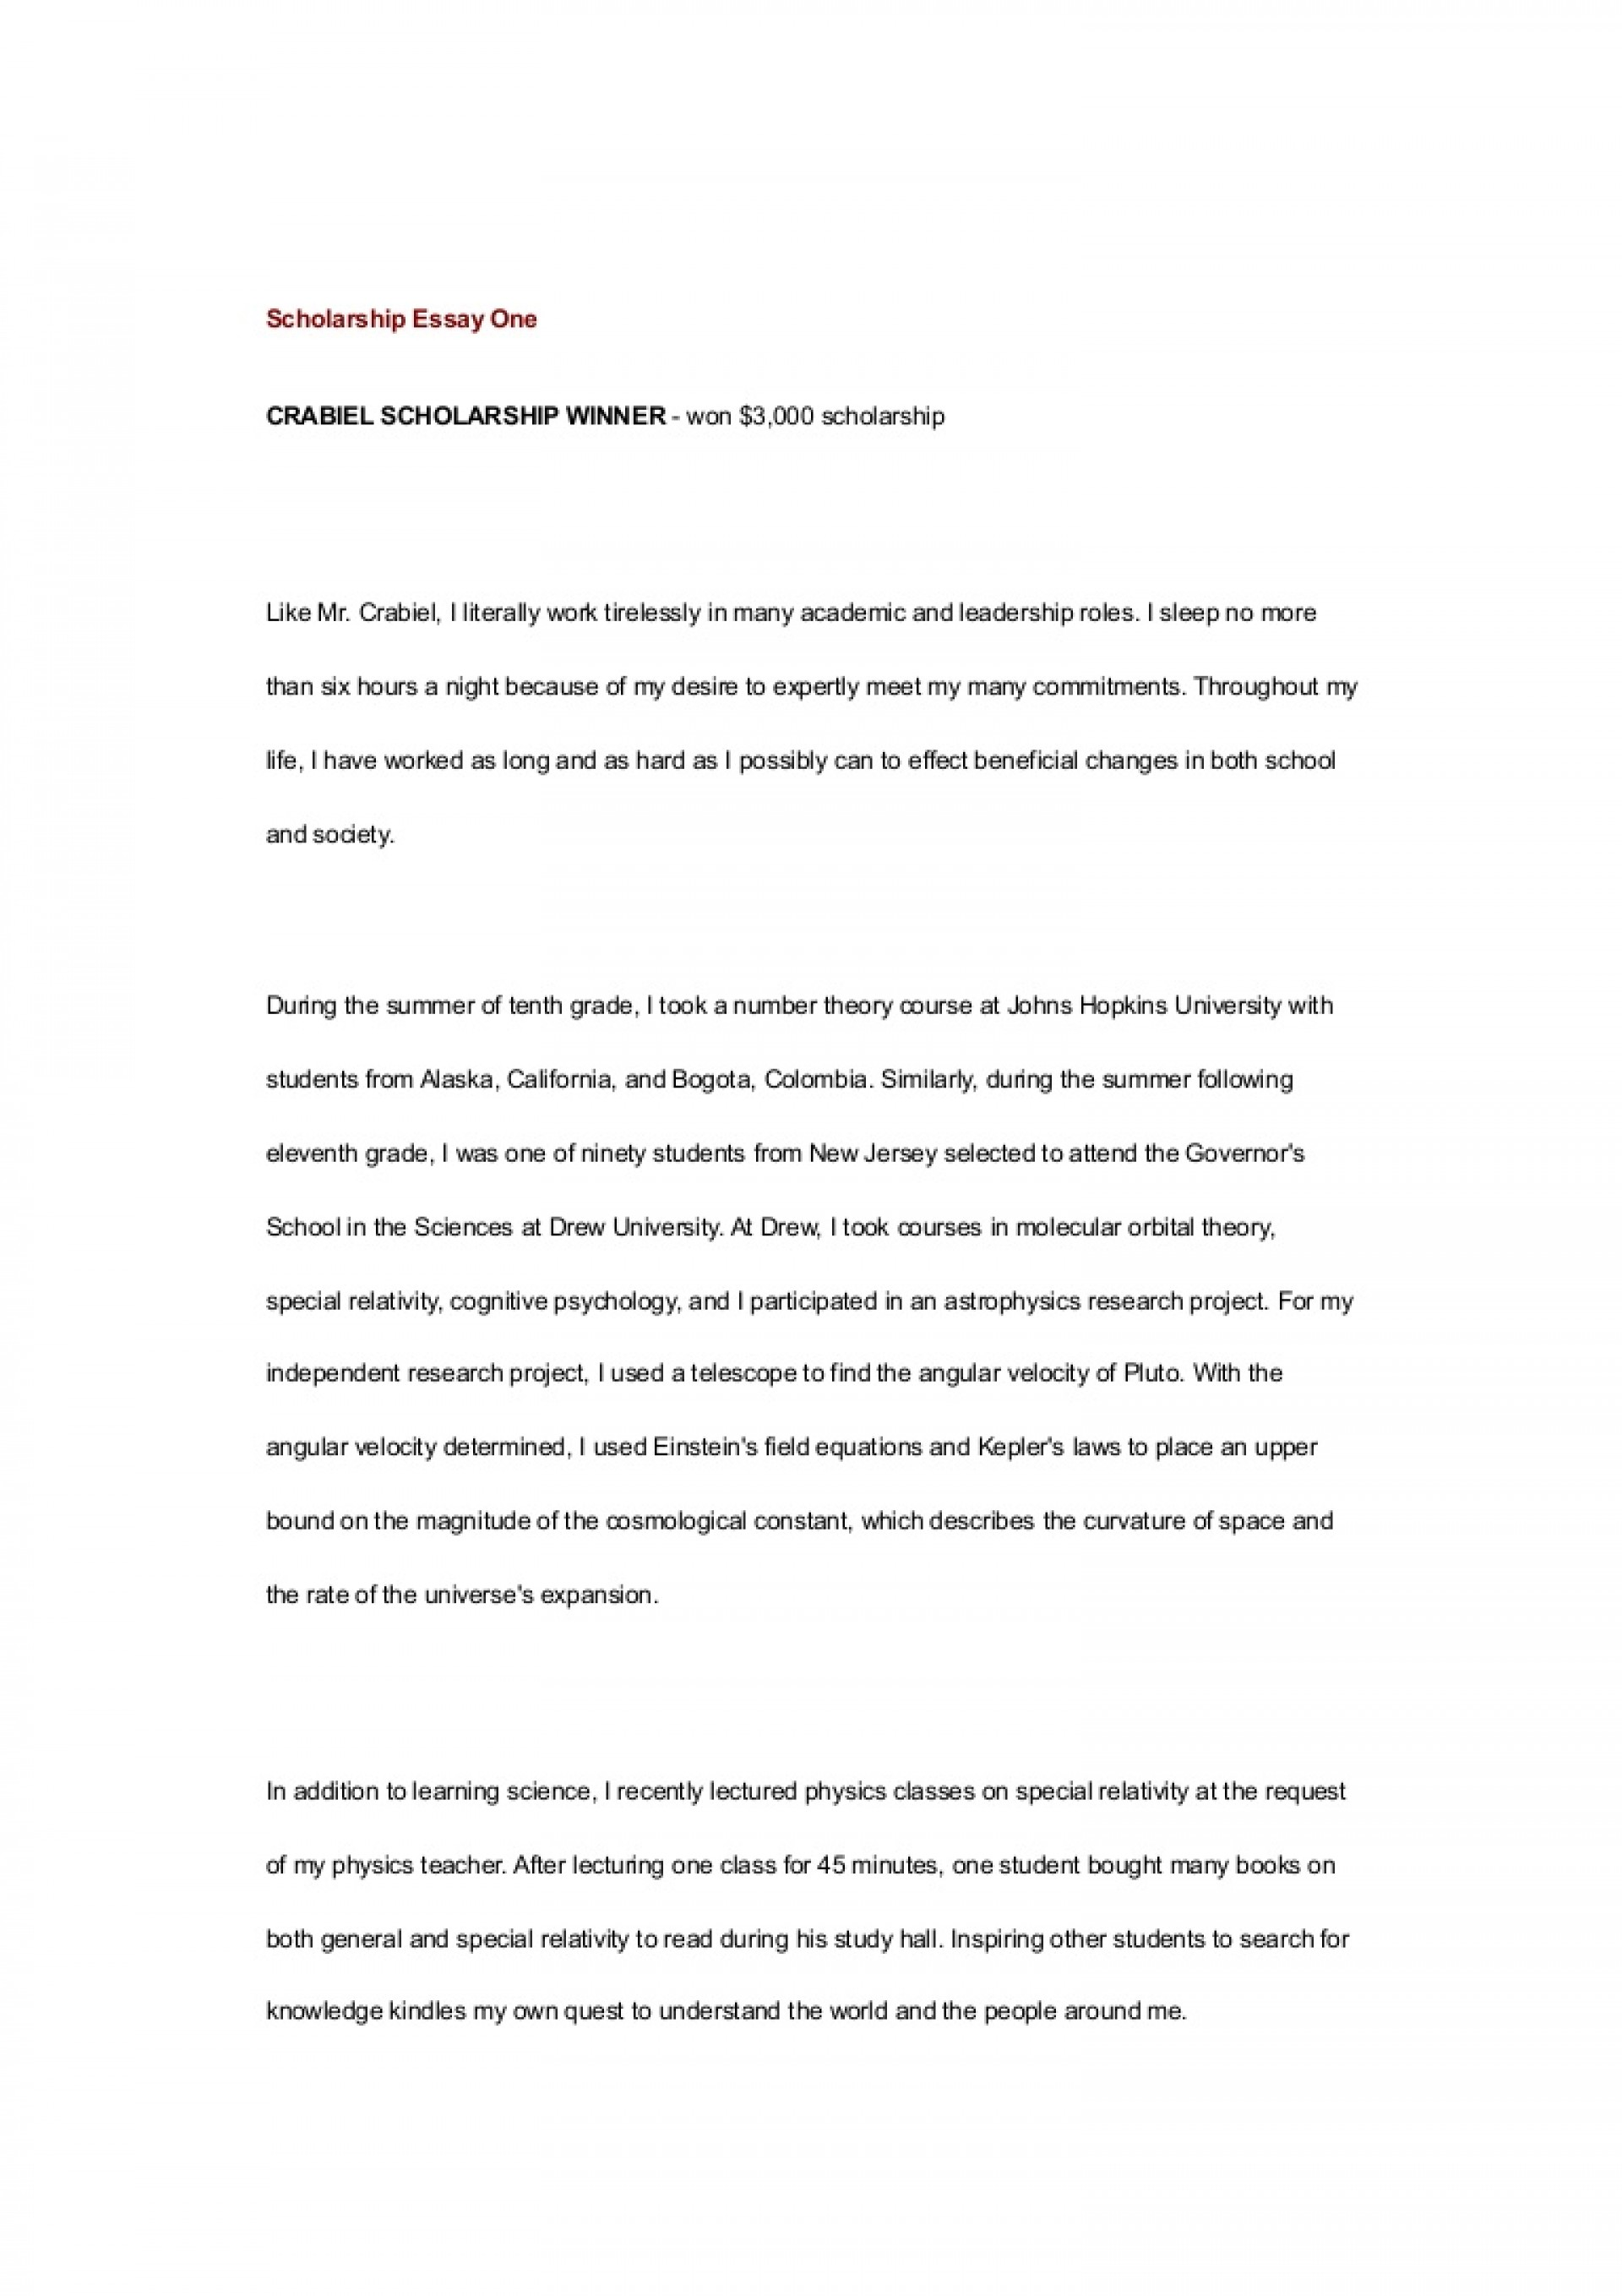 012 Scholarshipessayone Phpapp01 Thumbnail Essay Example Good Scholarship Wonderful Essays Great Samples Titles For 1920